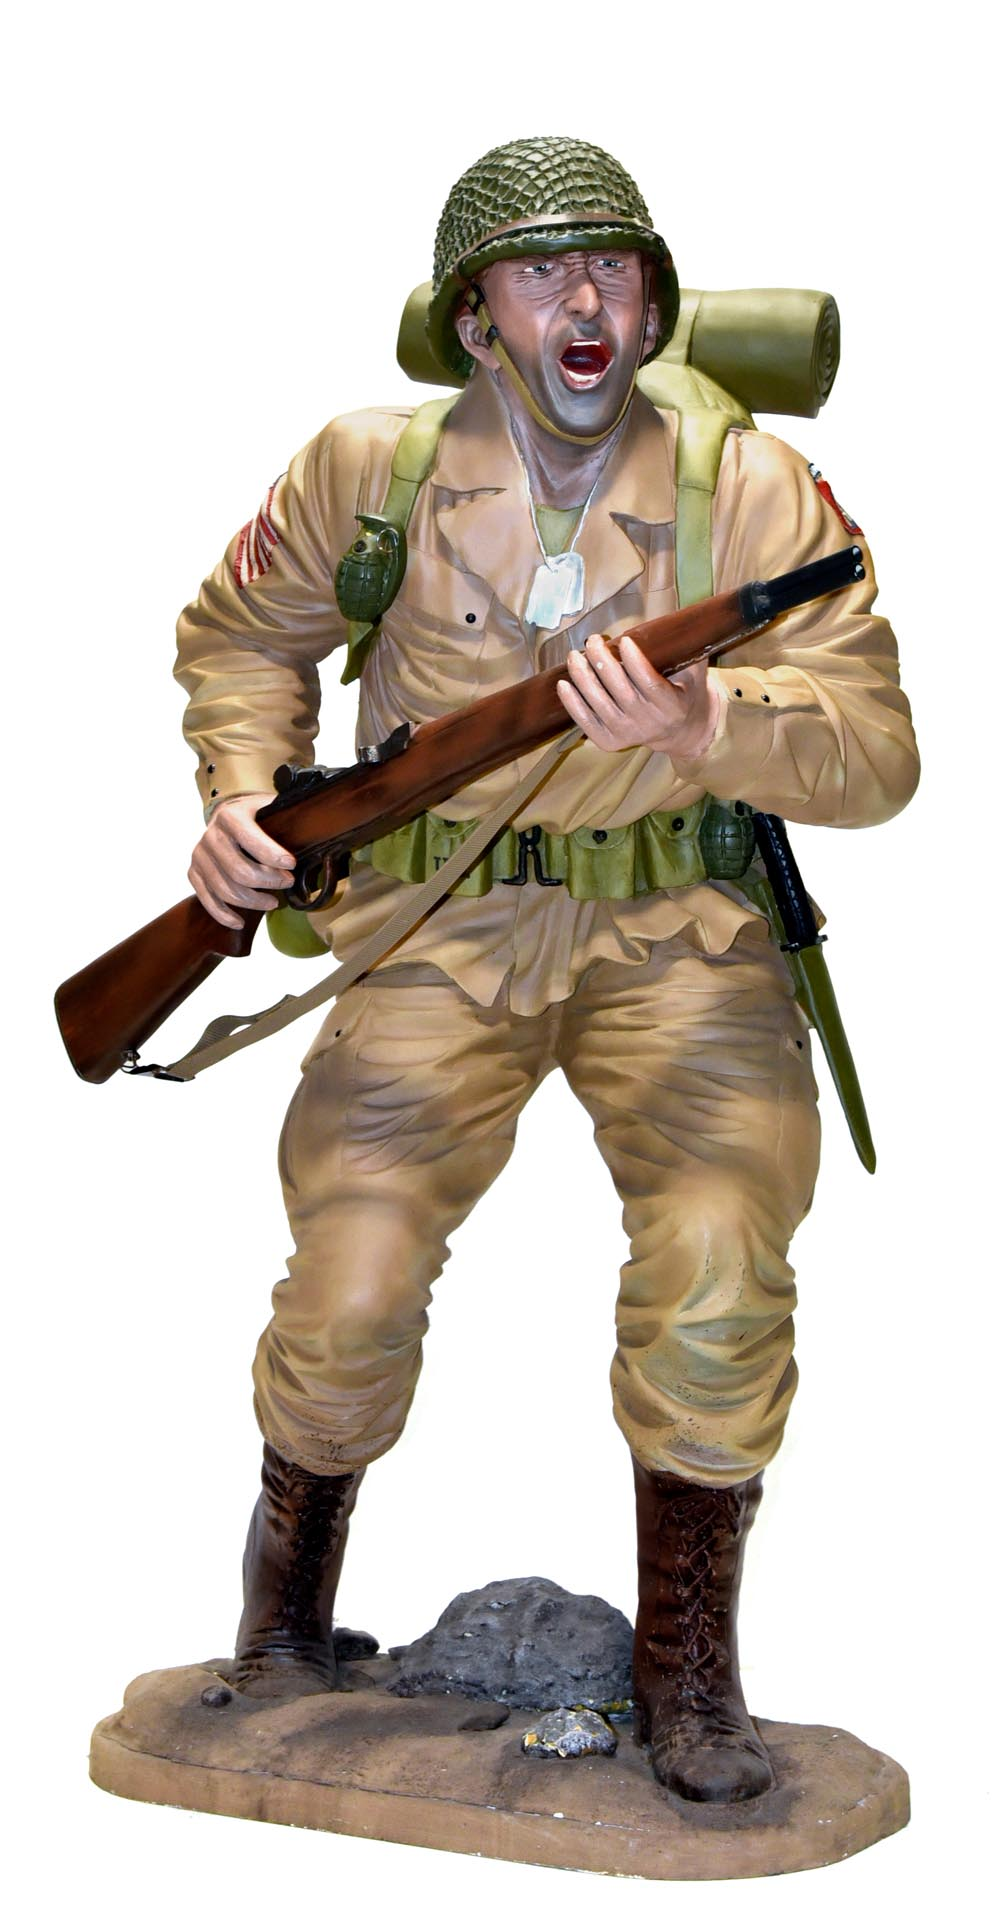 Larger Than Life Size Tan WWII U.S. Army Commemorative Soldier Polymer Statue